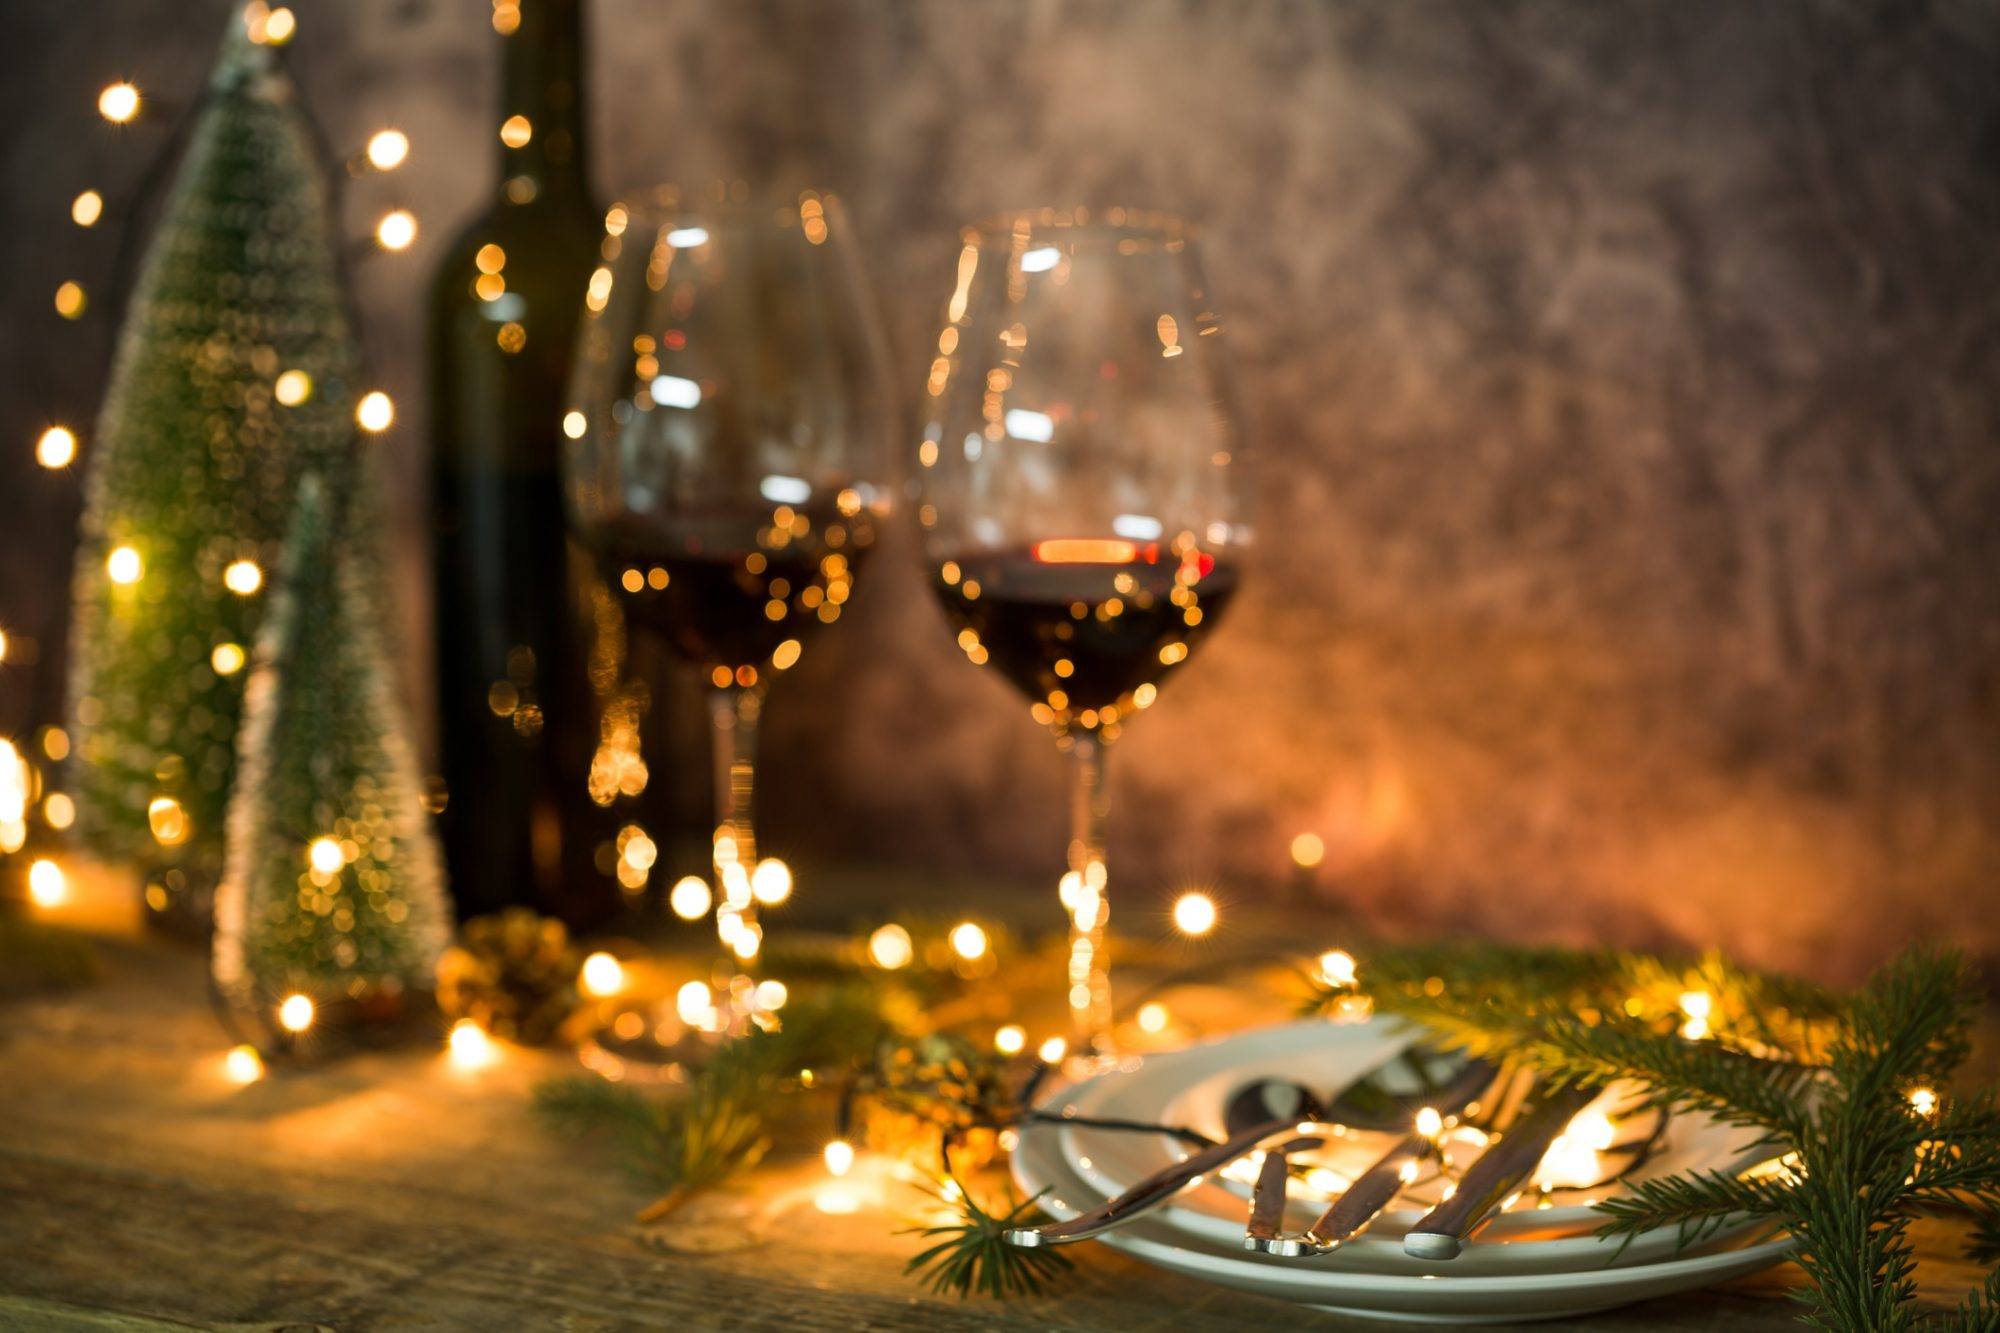 two wine glasses, plates, and christmas lights on a decorated christmas dinner table